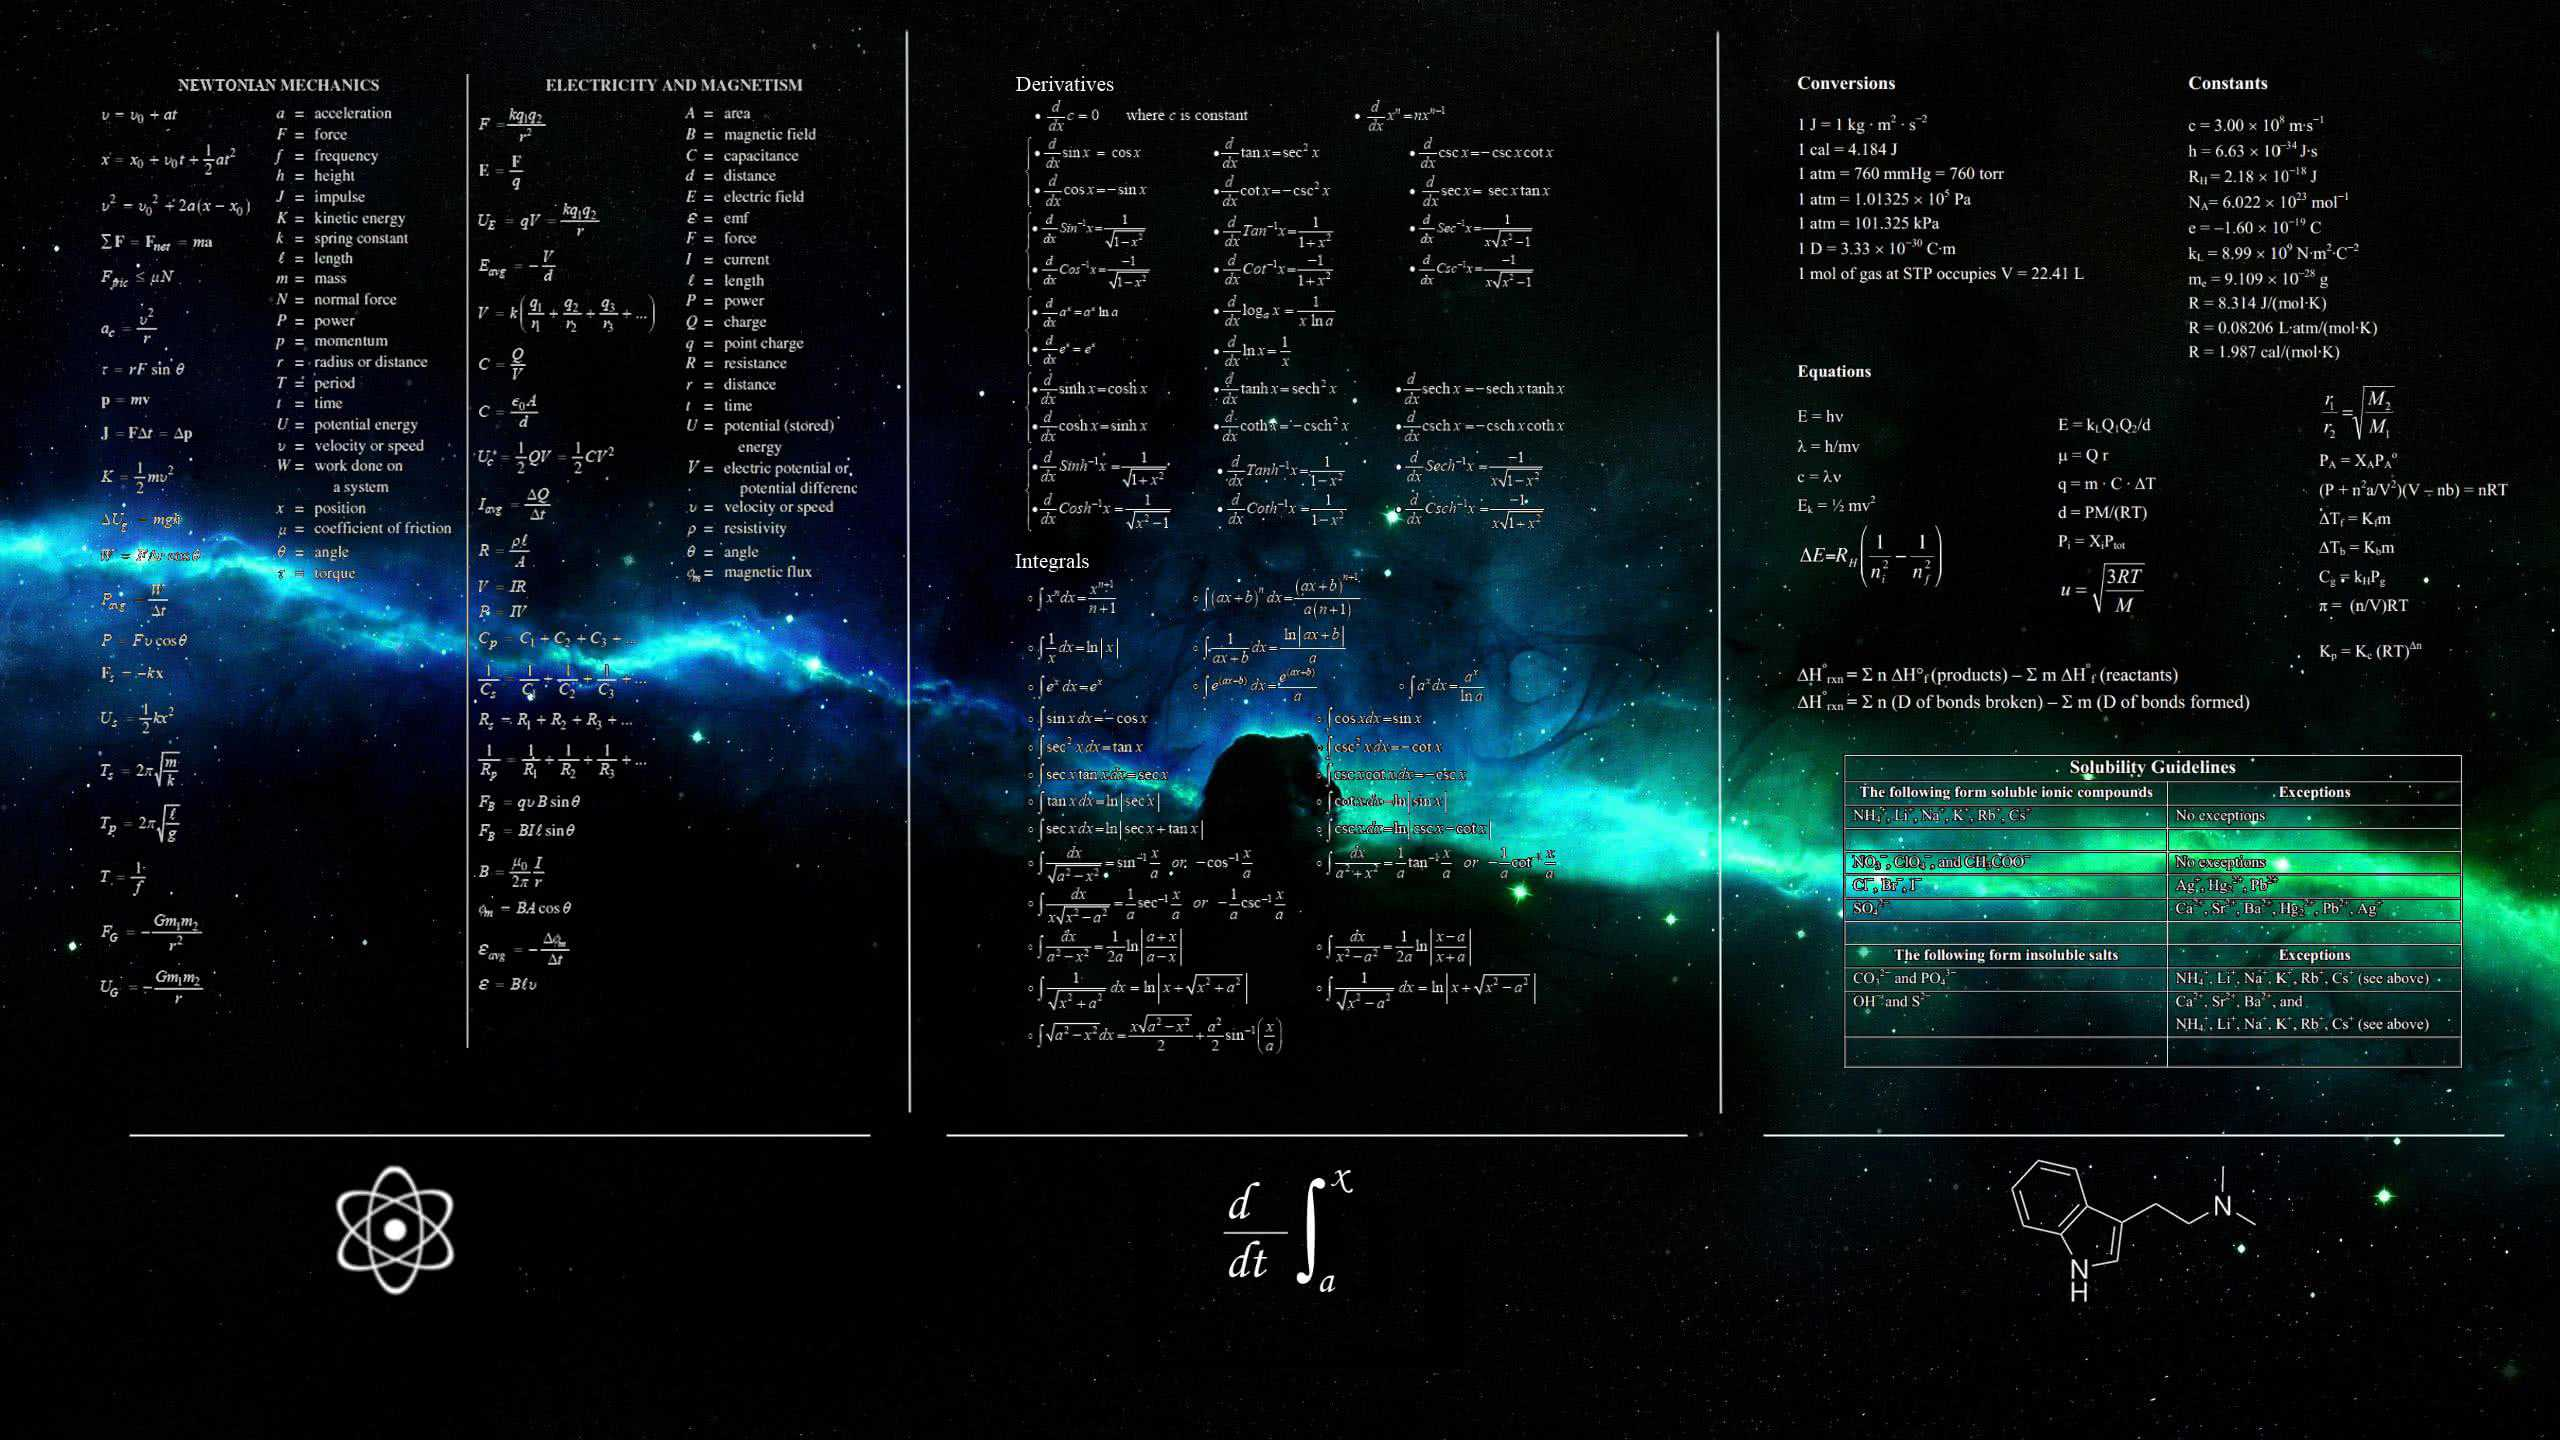 Physics Equations Wqhd 1440p Wallpaper Pixelz